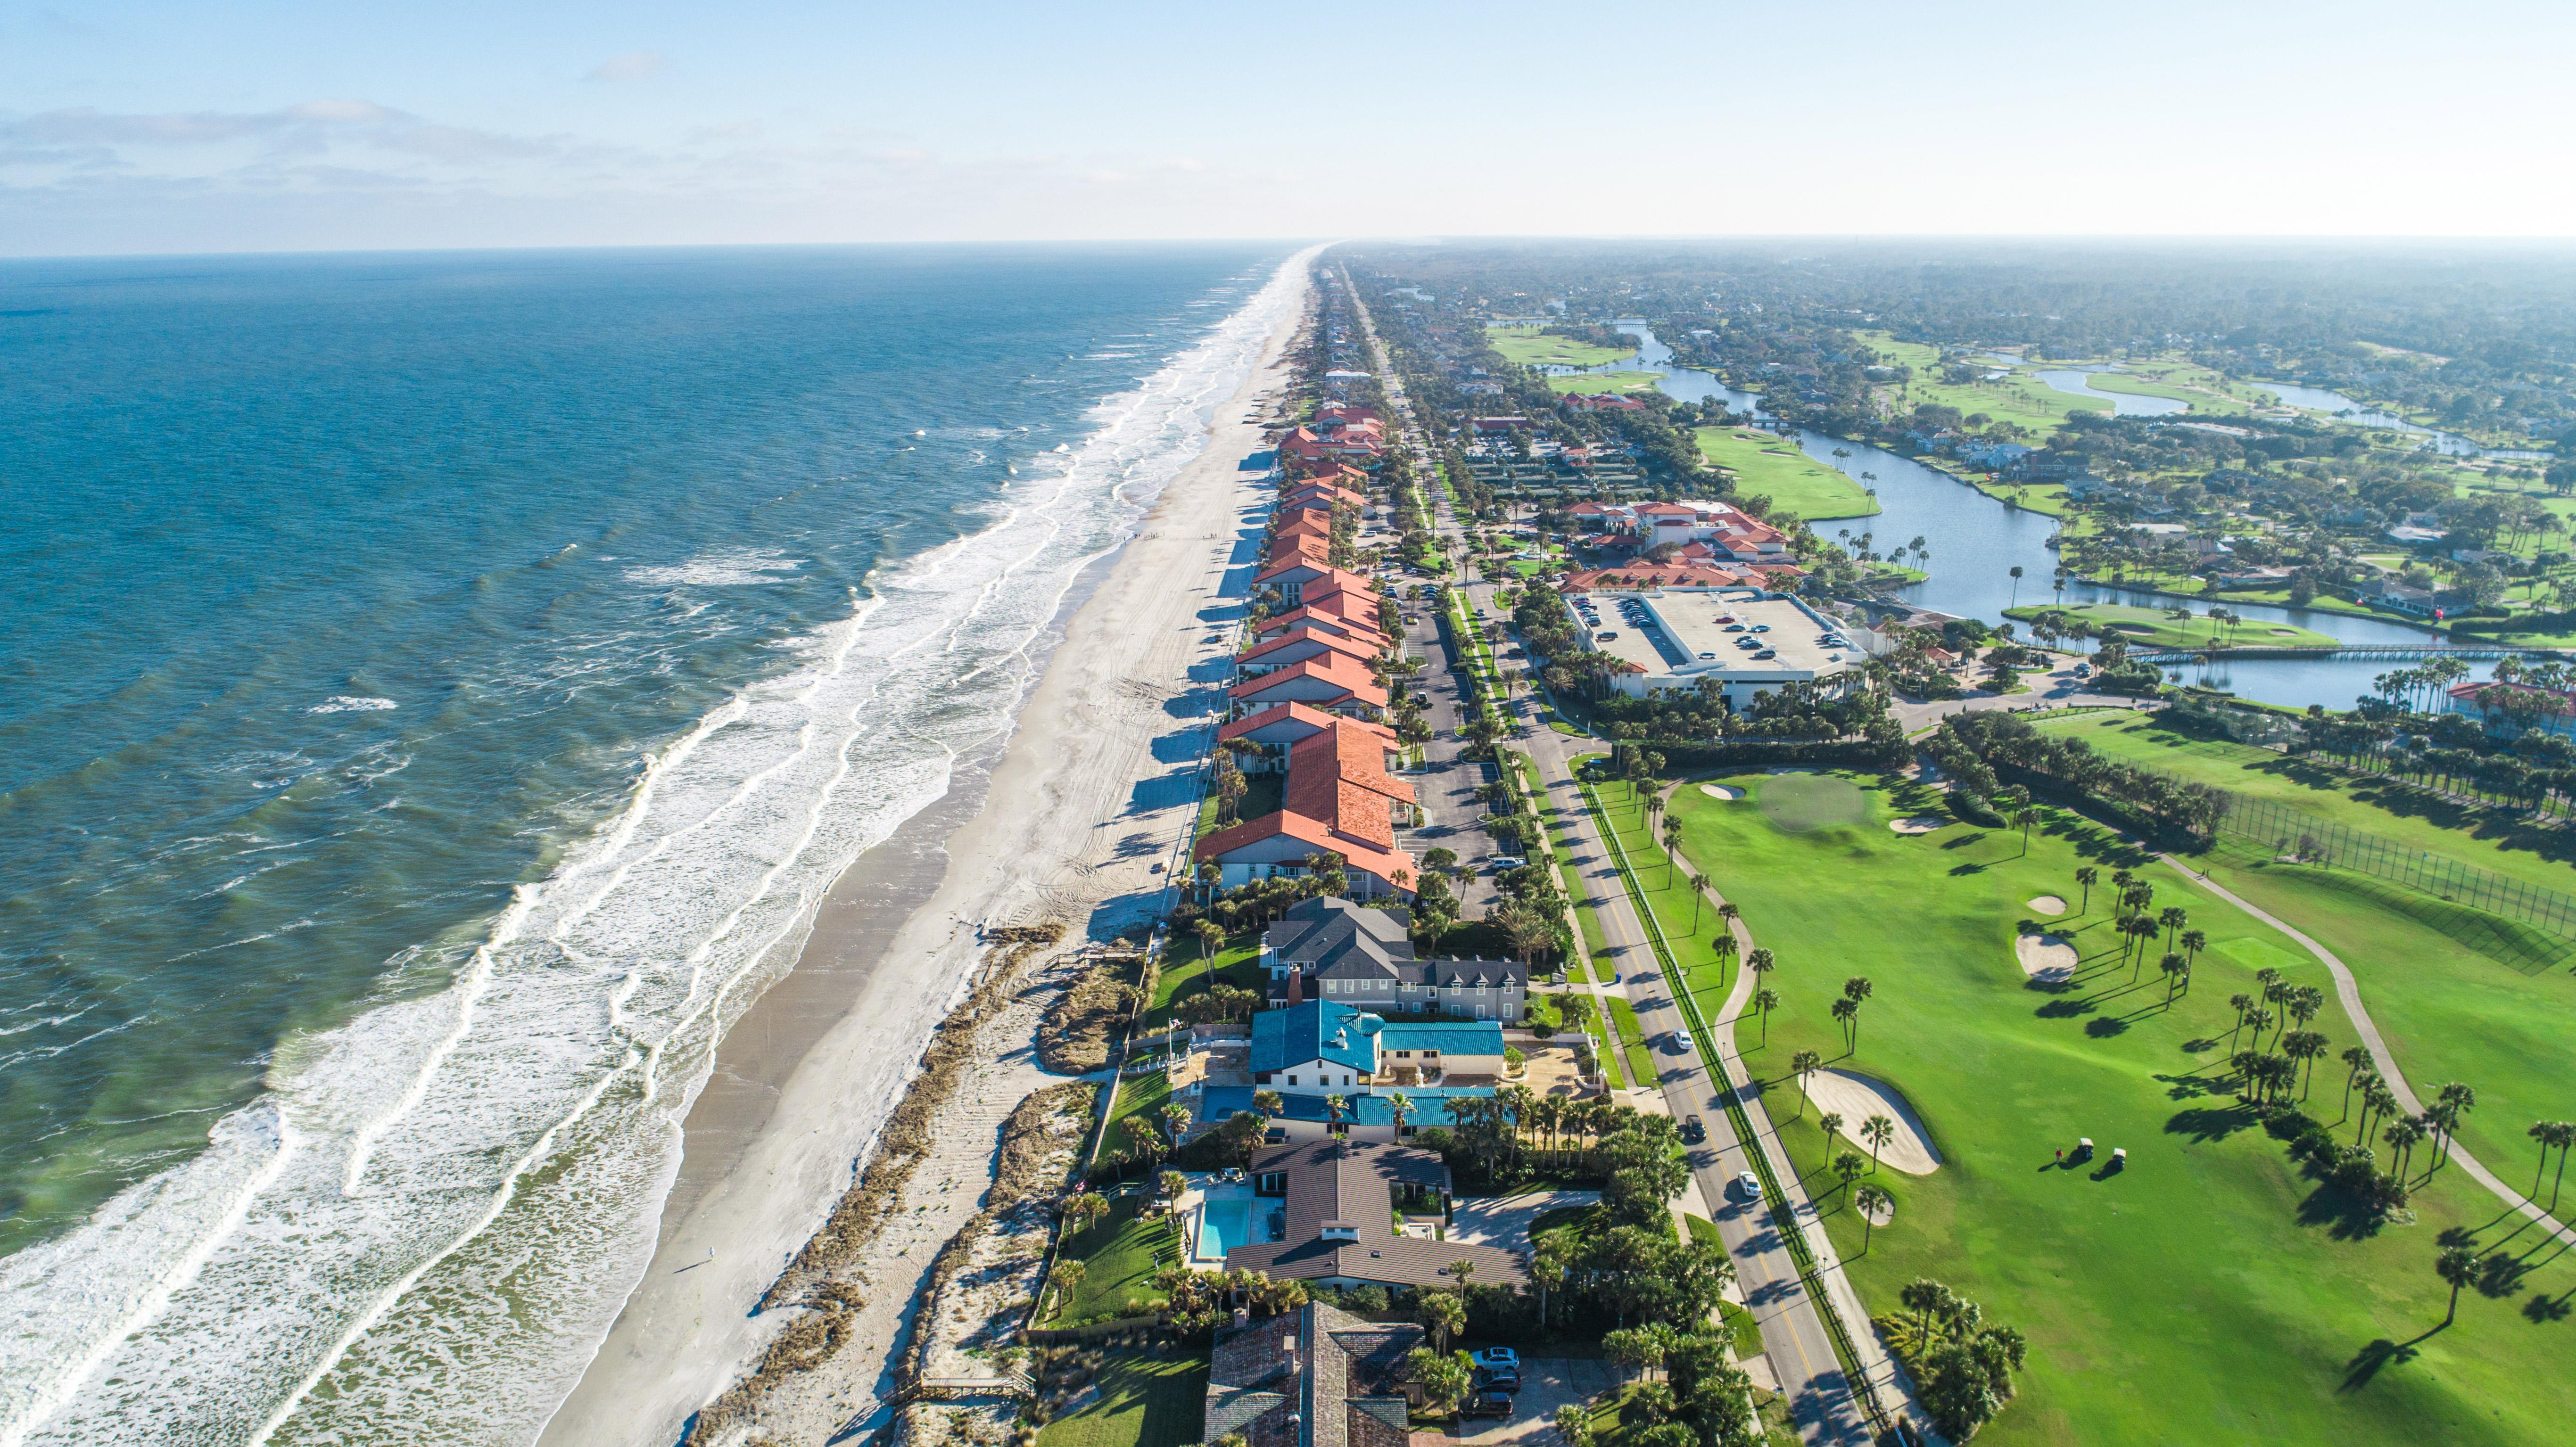 The Top 3 Hottest Real Estate Markets for 2017 Are in Florida